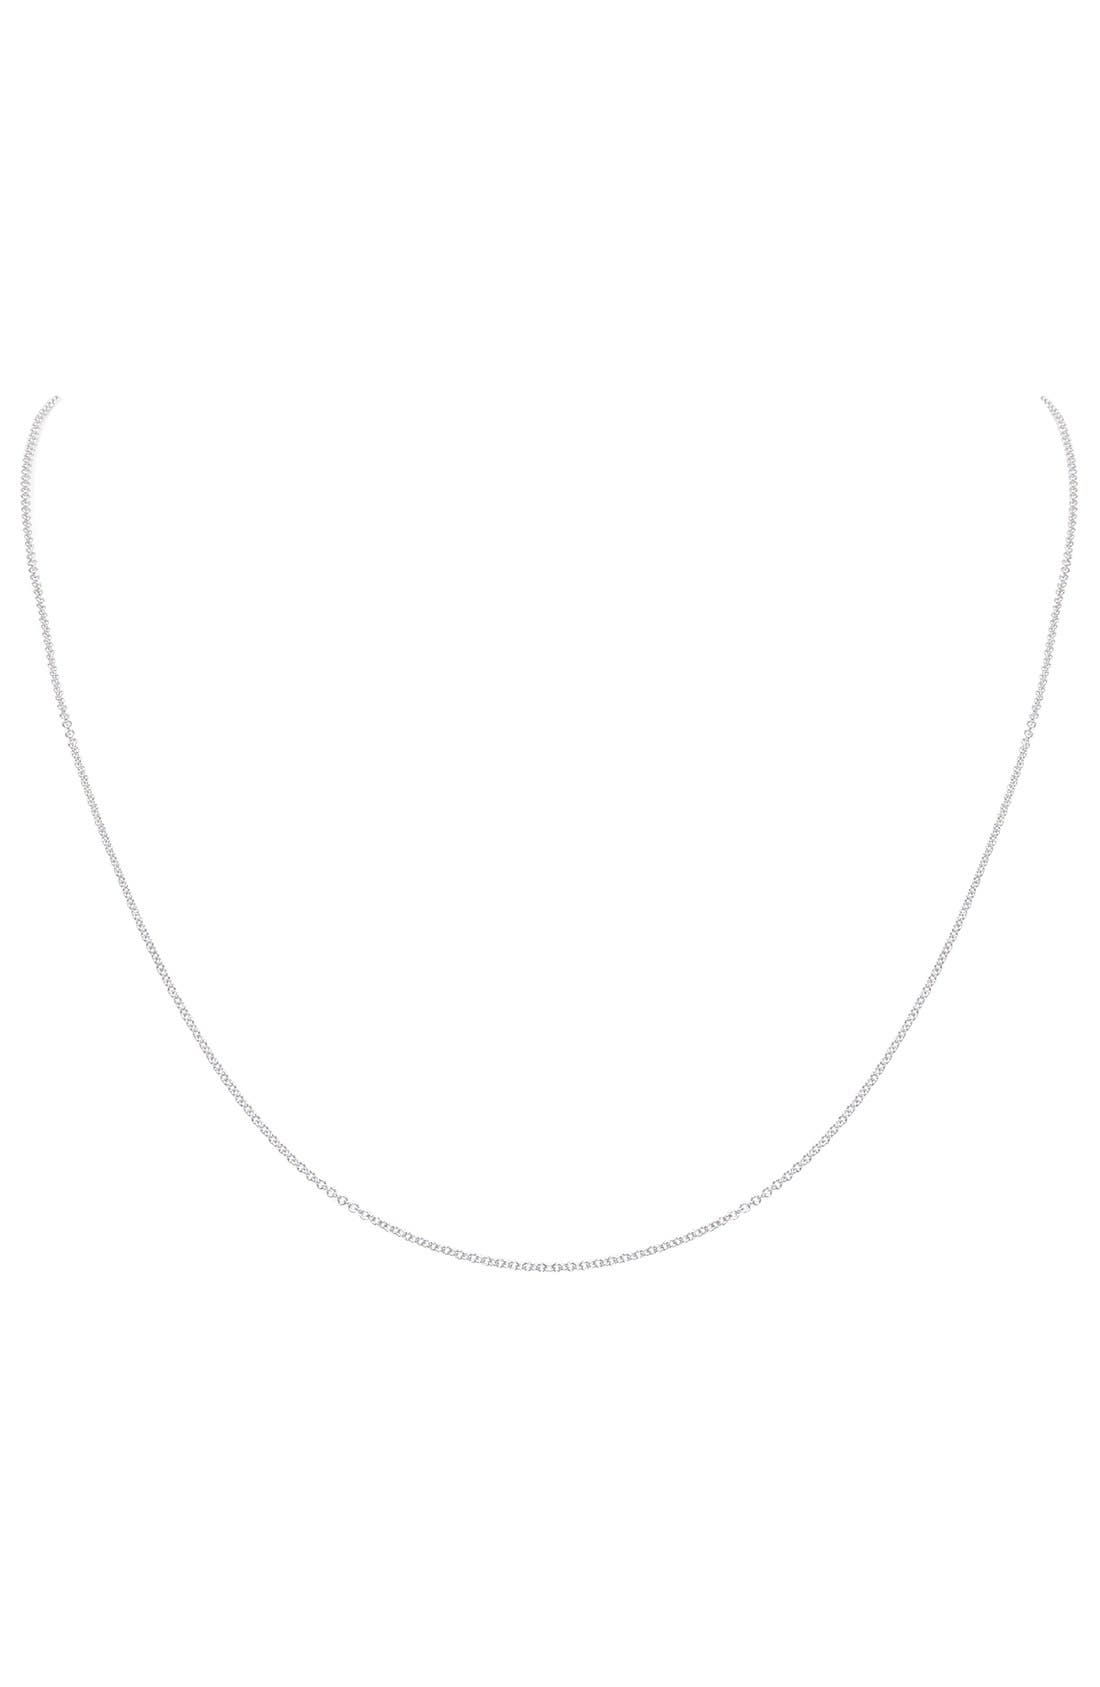 Chain Necklace,                         Main,                         color, White Gold